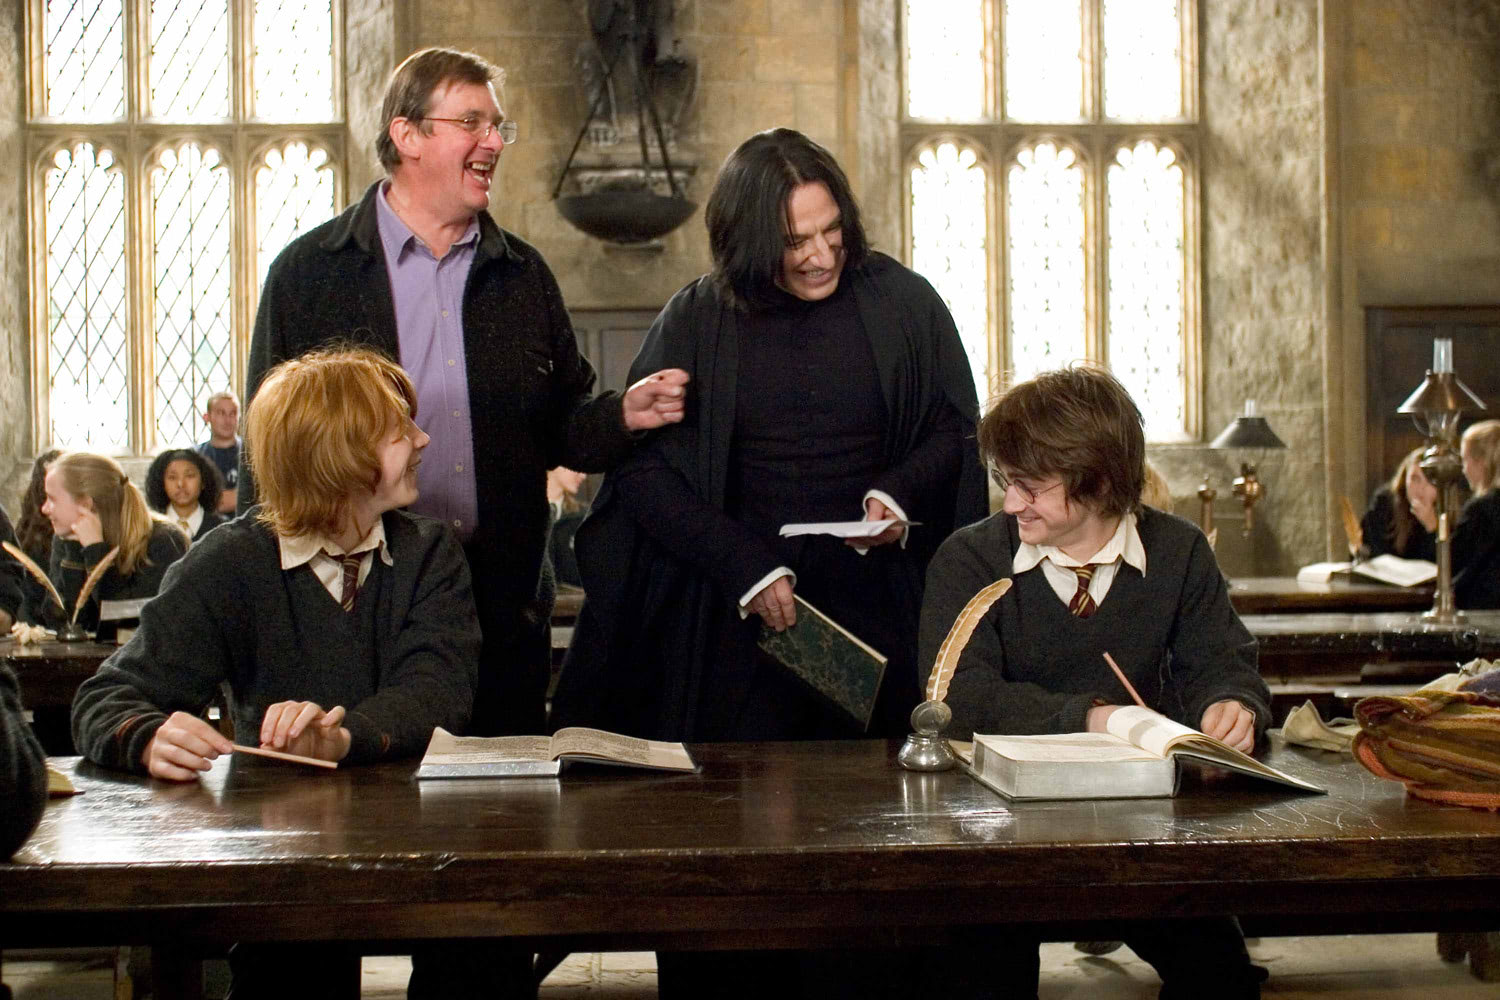 Mike Newell, Alan Rickman, Rupert Grint and Dan Radcliffe